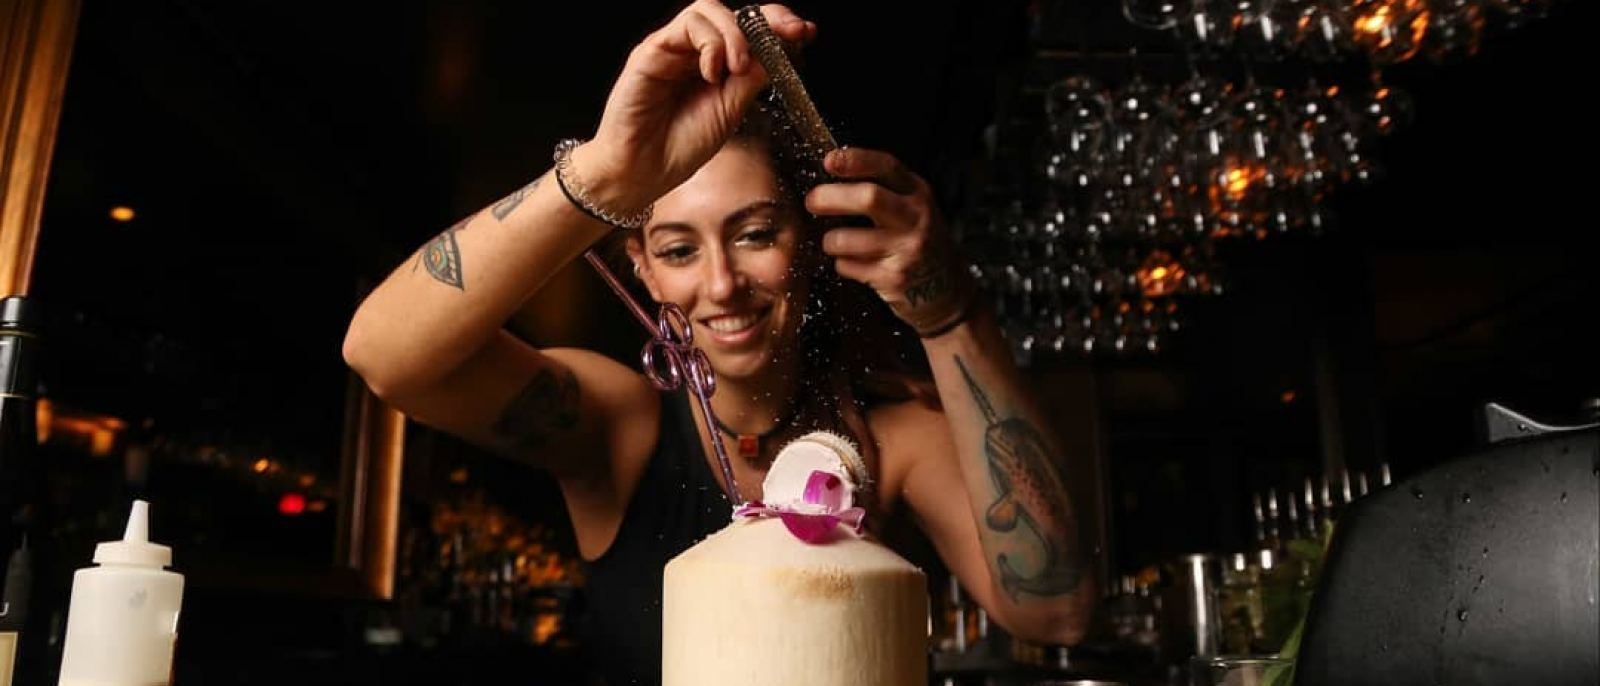 Bar manager Yael Vengroff makes the Cabana Club at The Spare Room